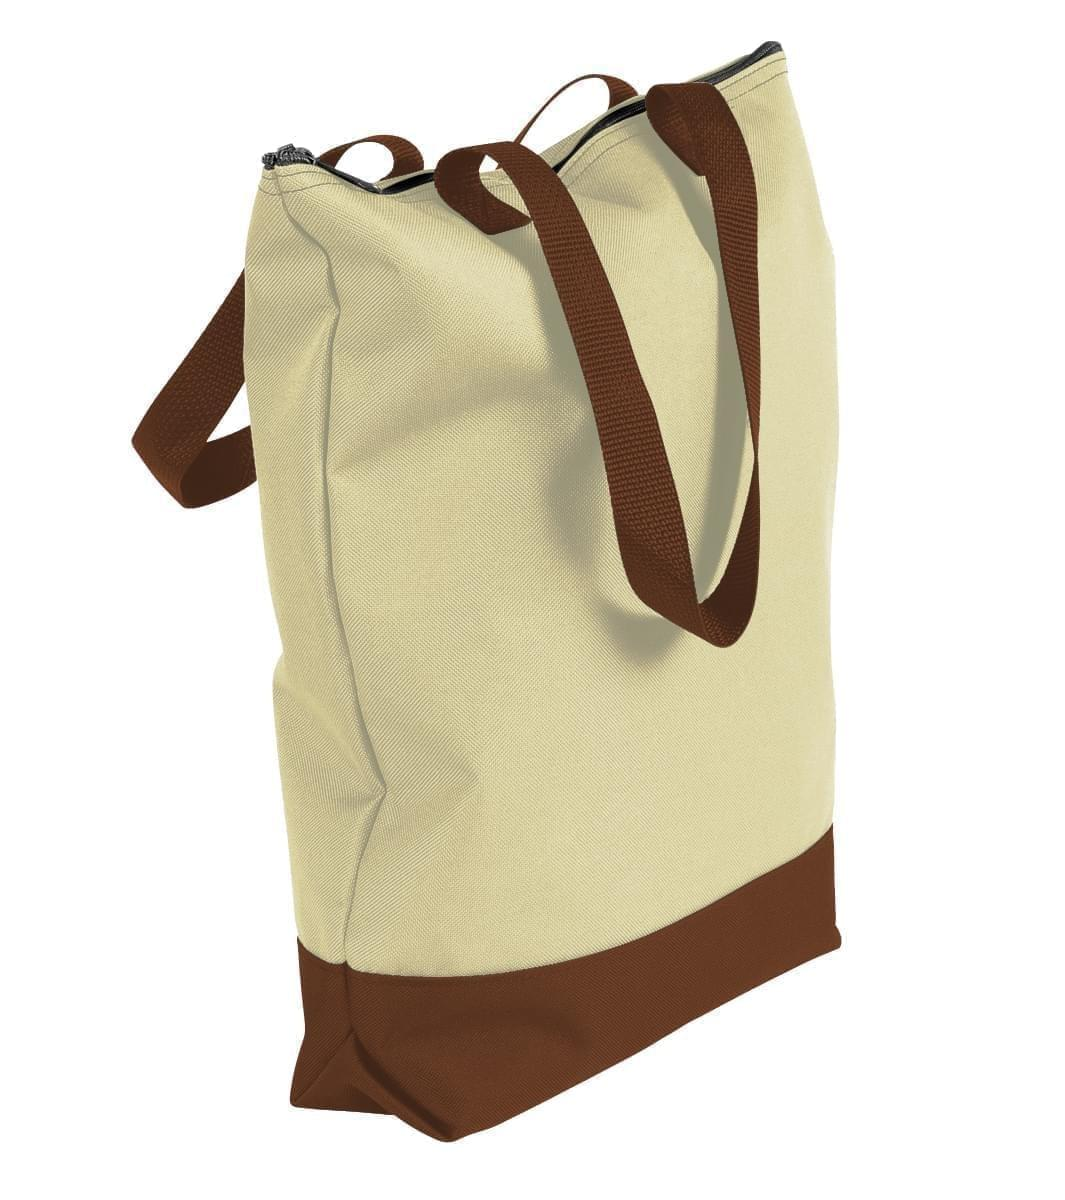 USA Made Canvas Portfolio Tote Bags, Natural-Brown, 1AAMX1UAKS